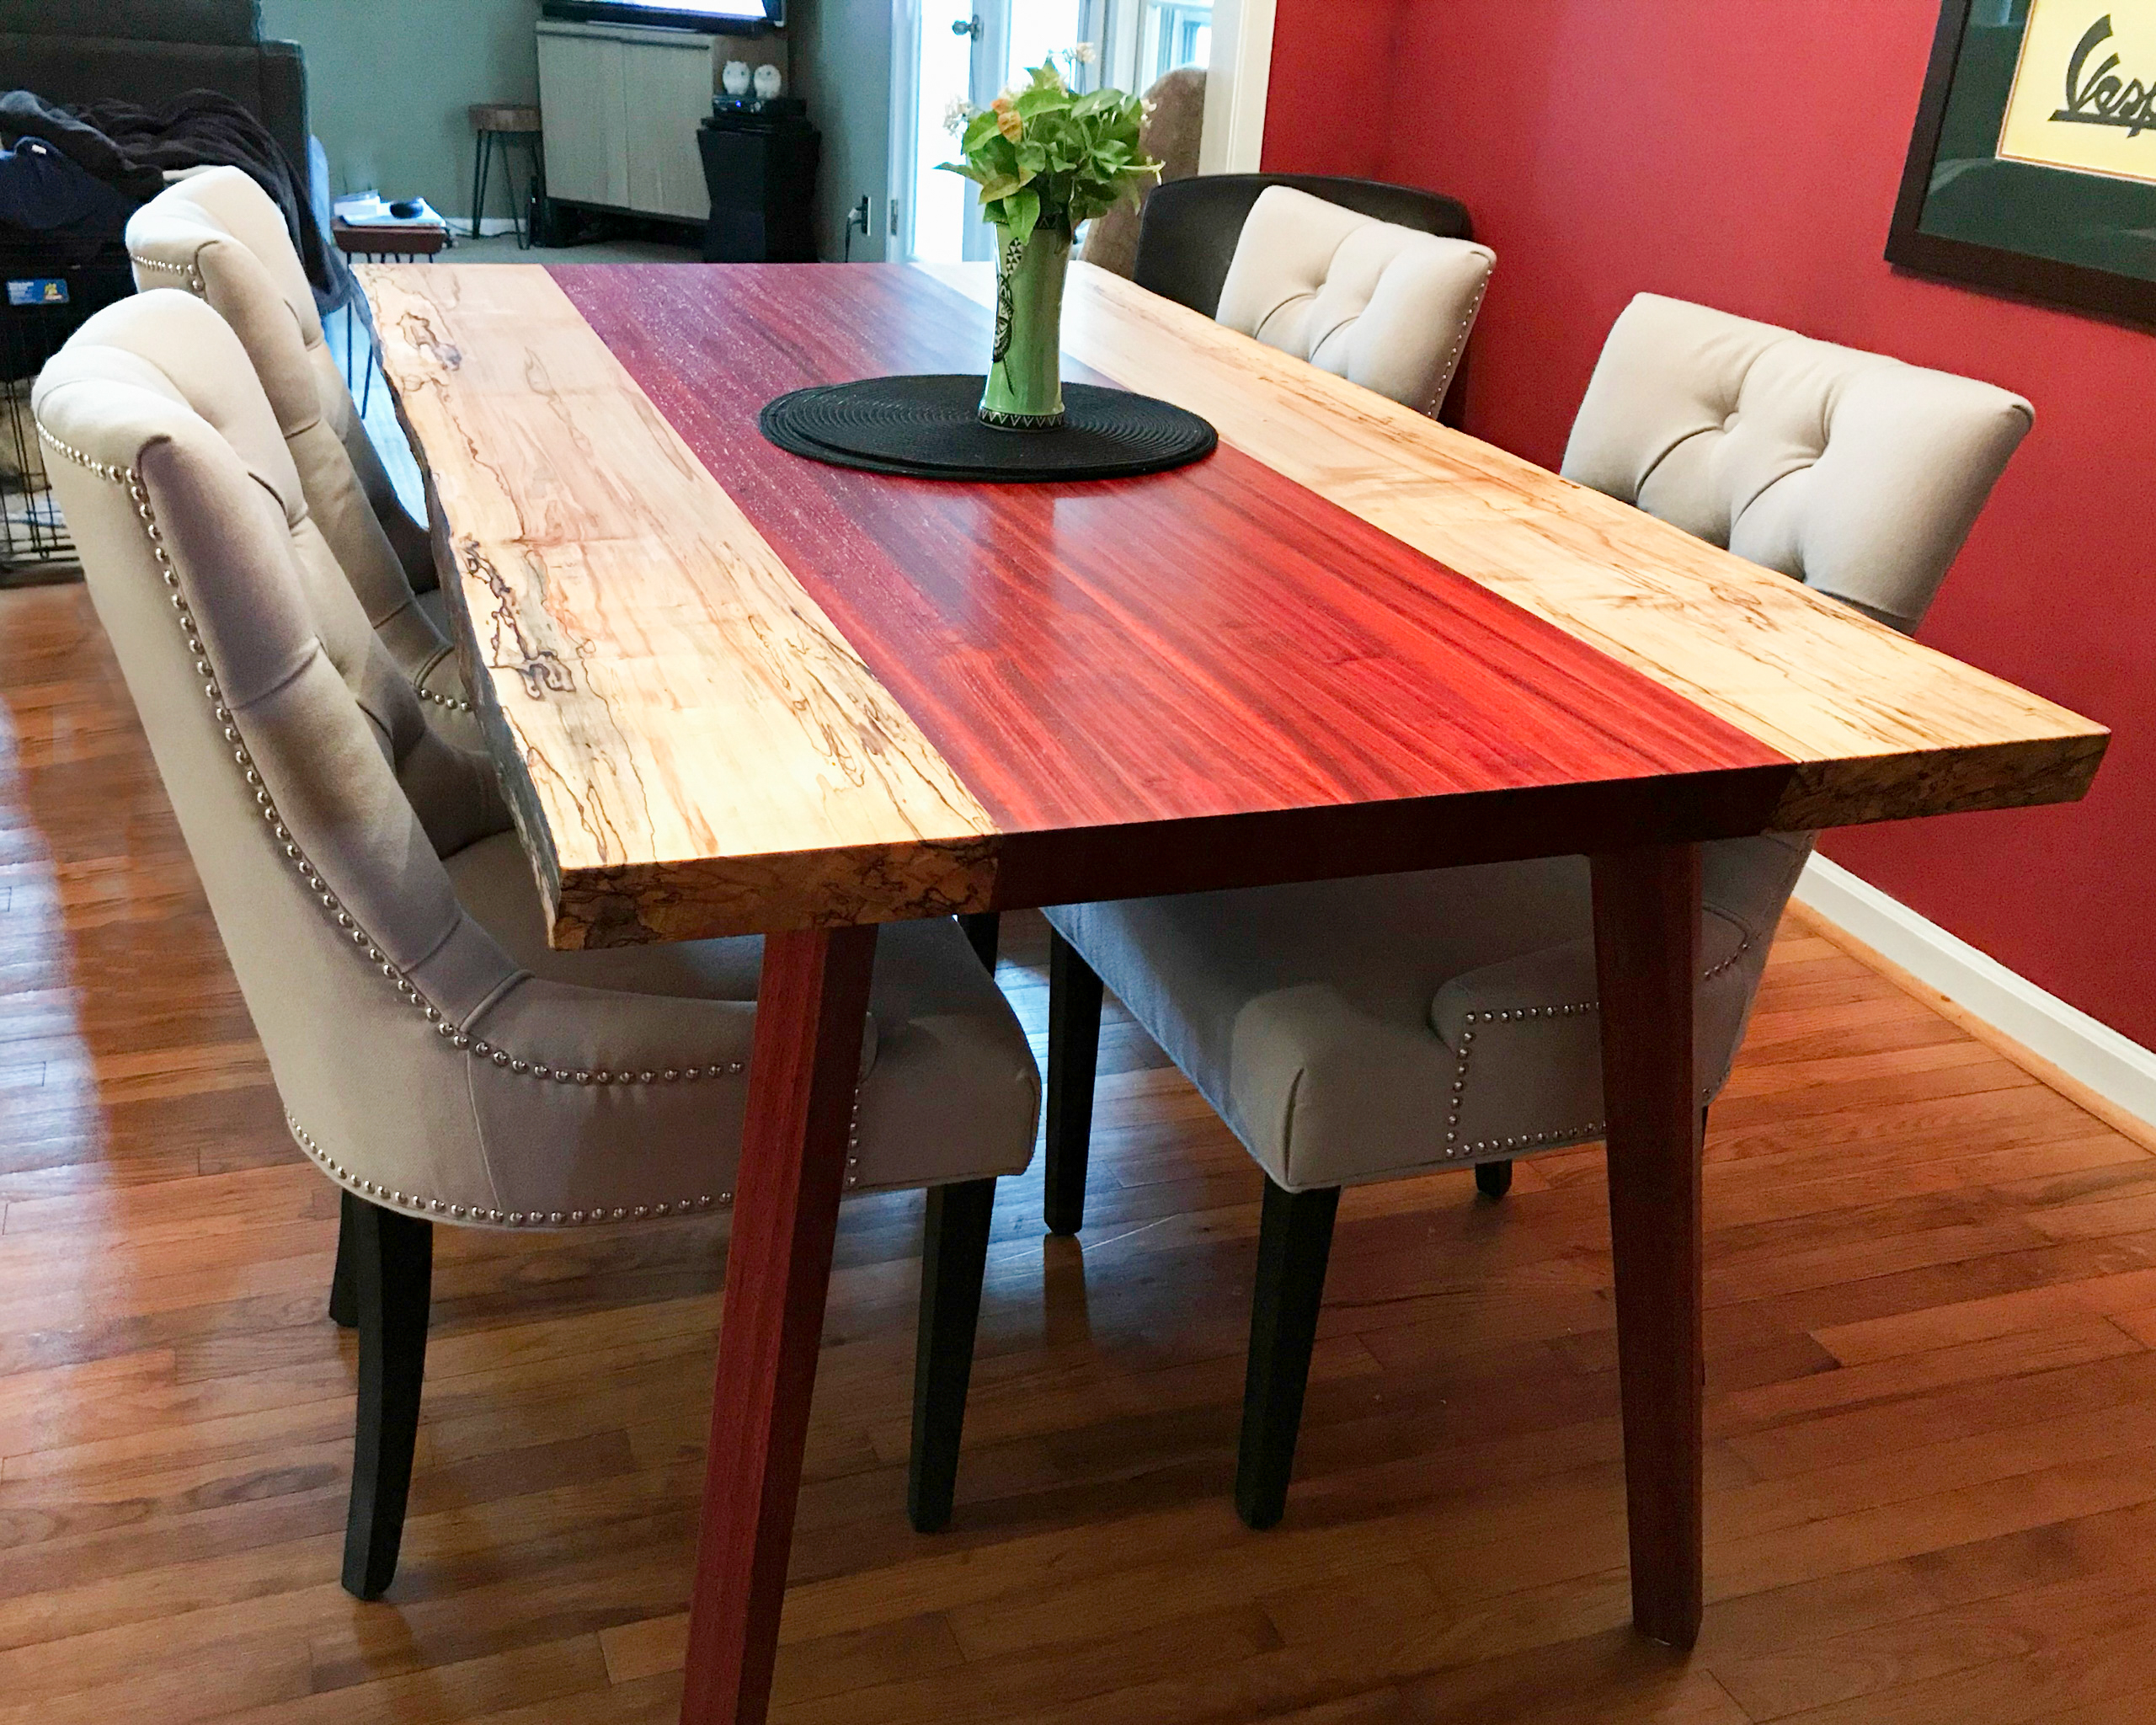 Live Edge Padauk & Maple Table